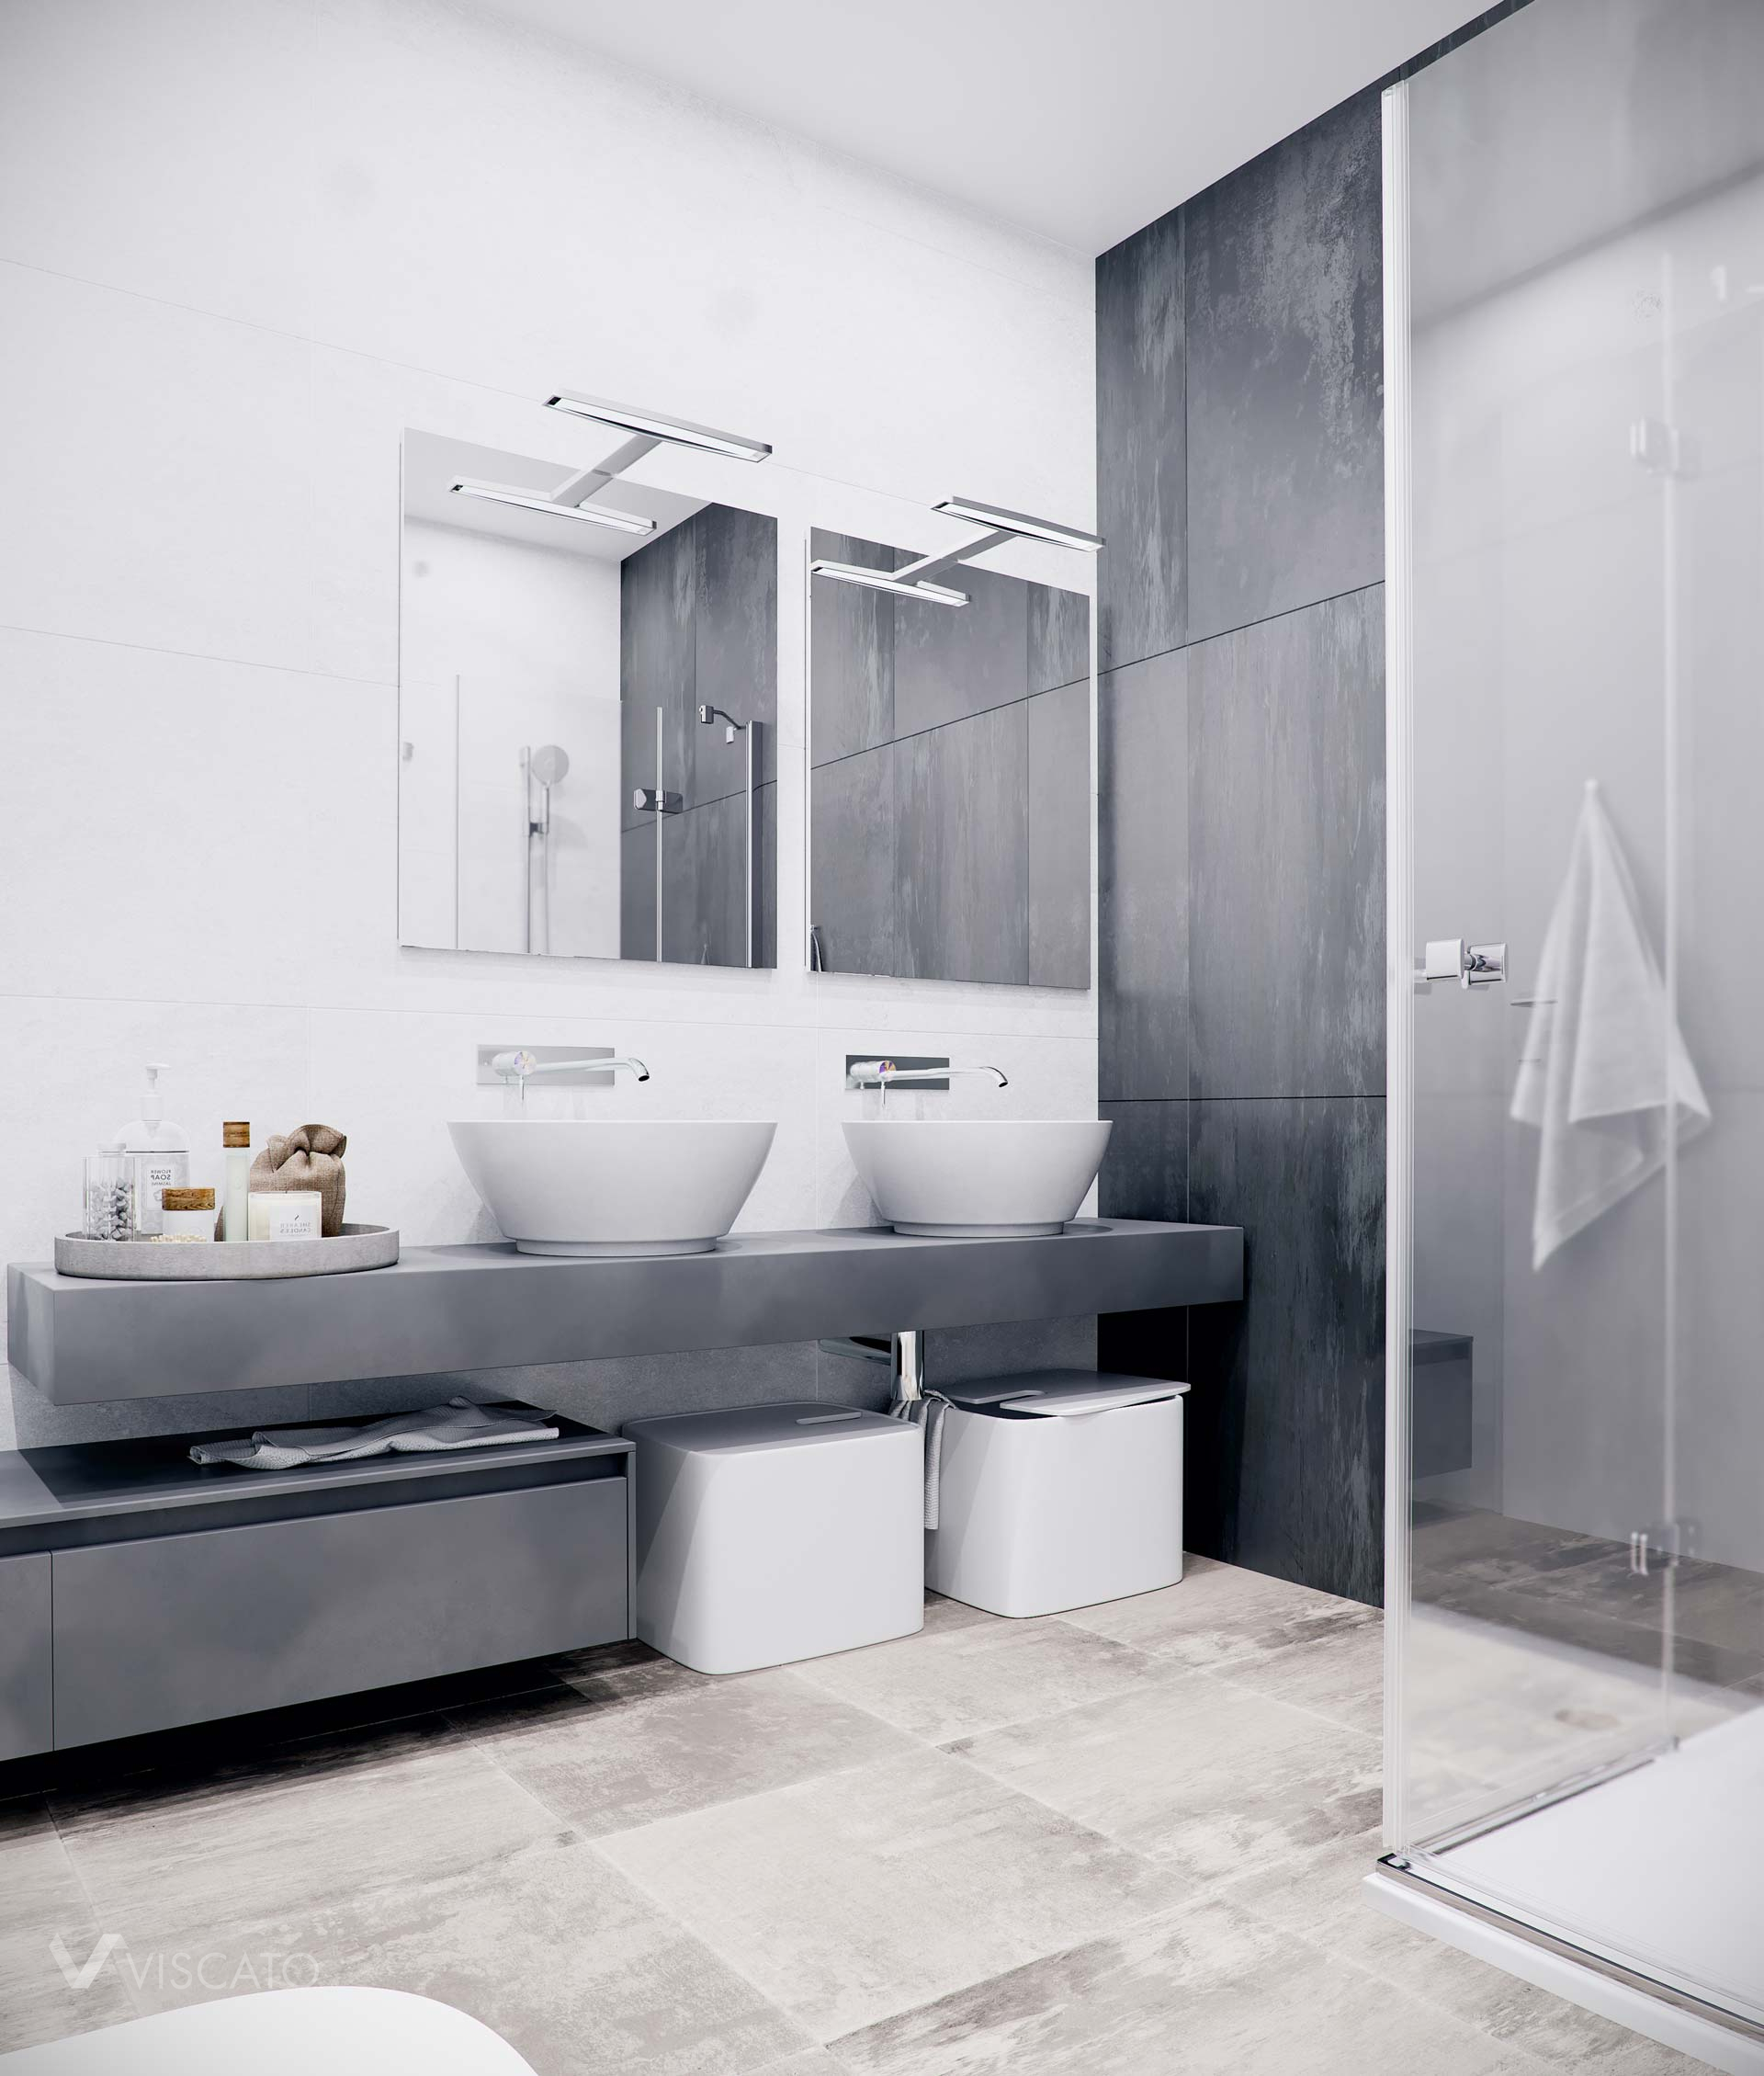 bathroom with two washbasins, Viscato 3D